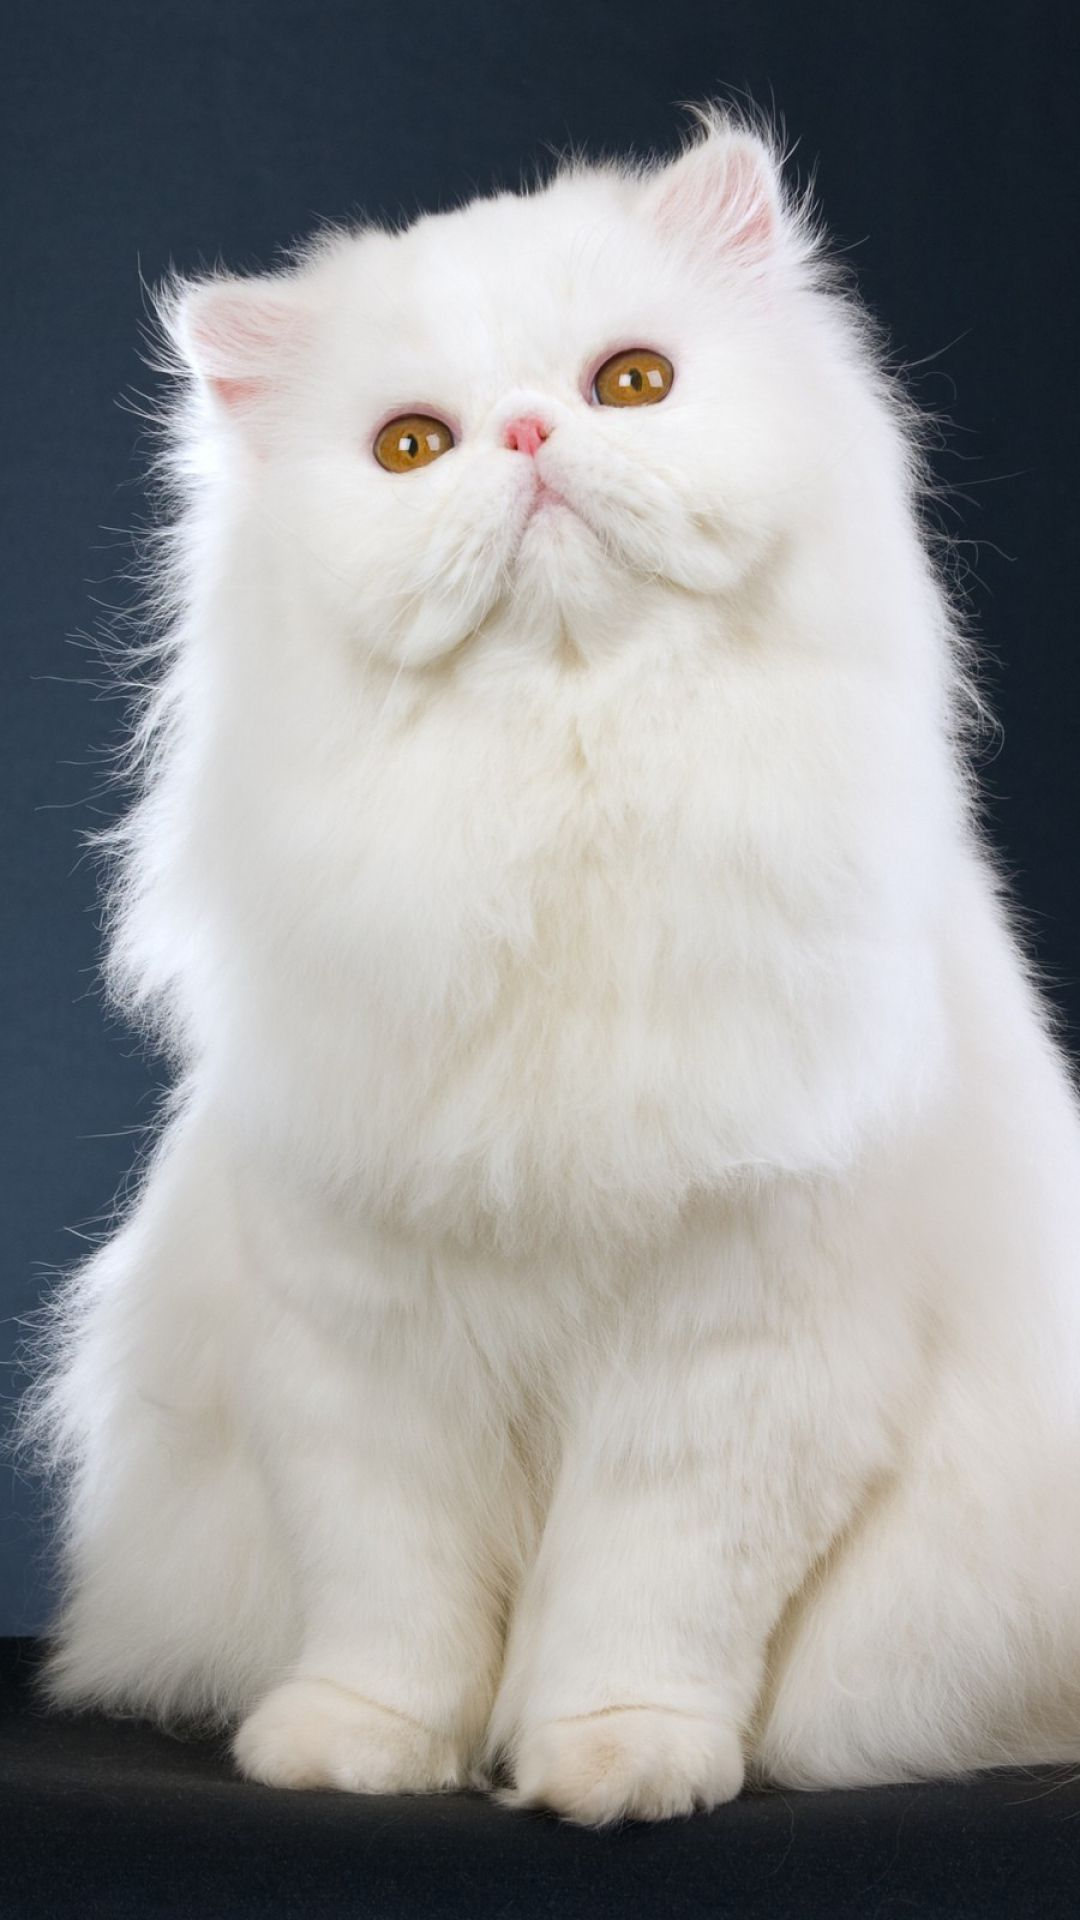 Beautiful white Persian cat with golden eyes